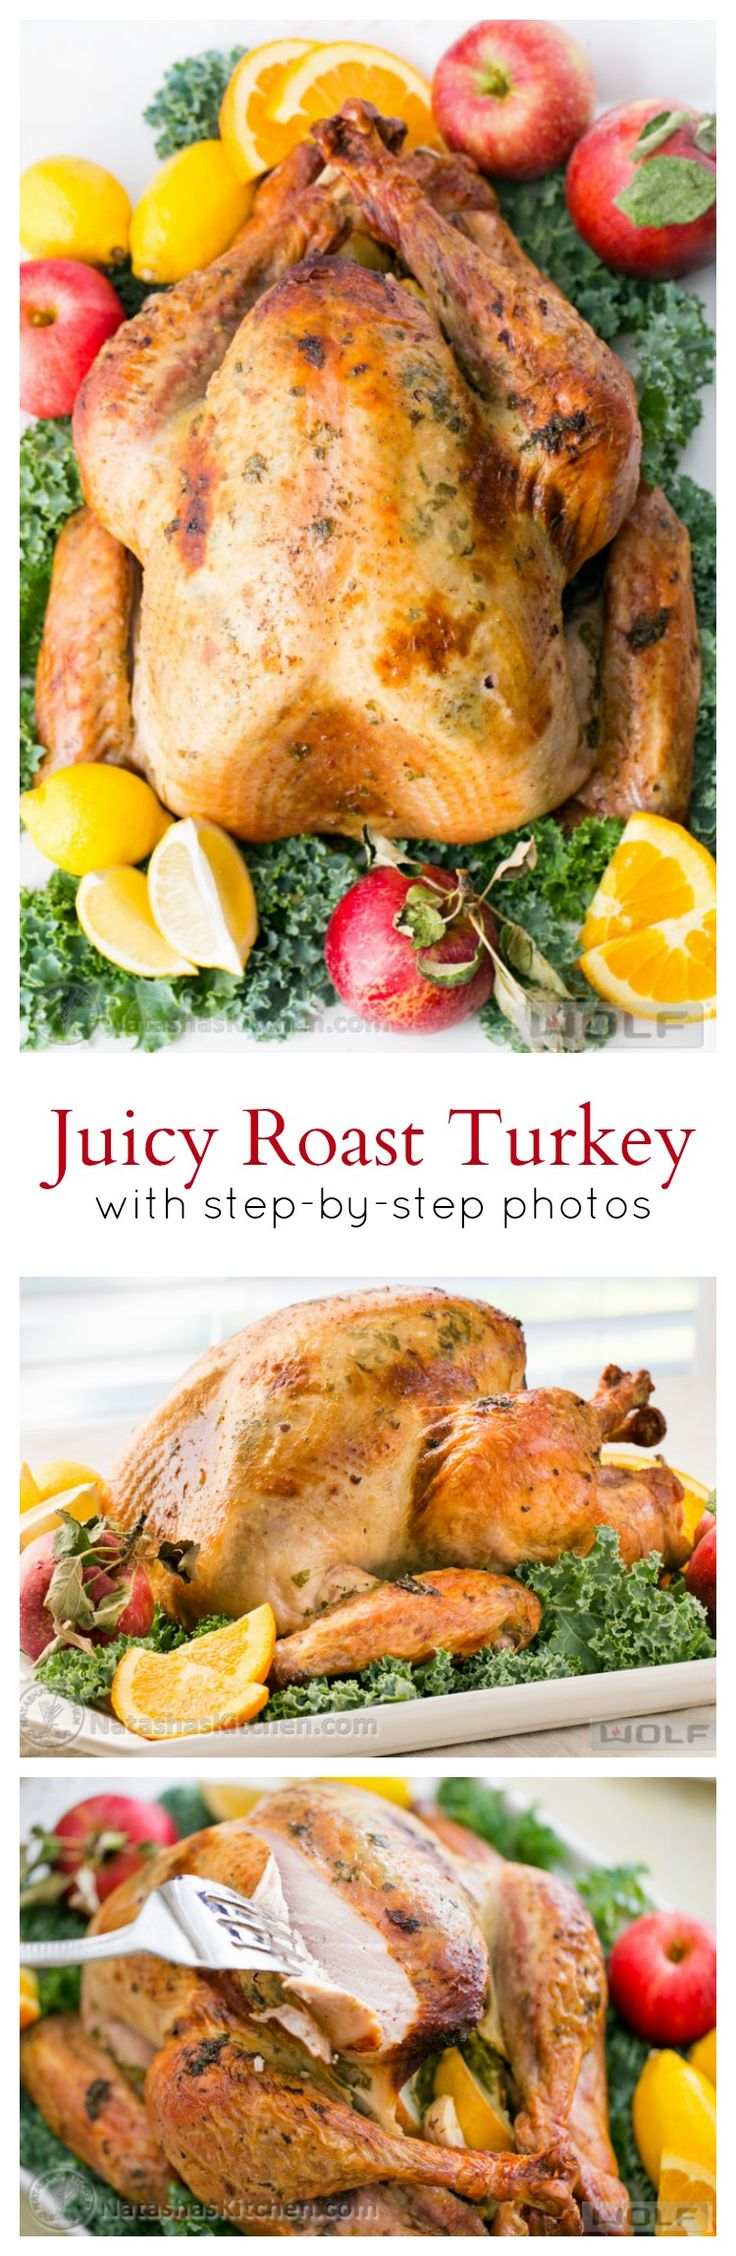 Juicy Roast Turkey. This turkey has the juiciest, most flavorful turkey breast! KEEPER!! from @natashaskitchen